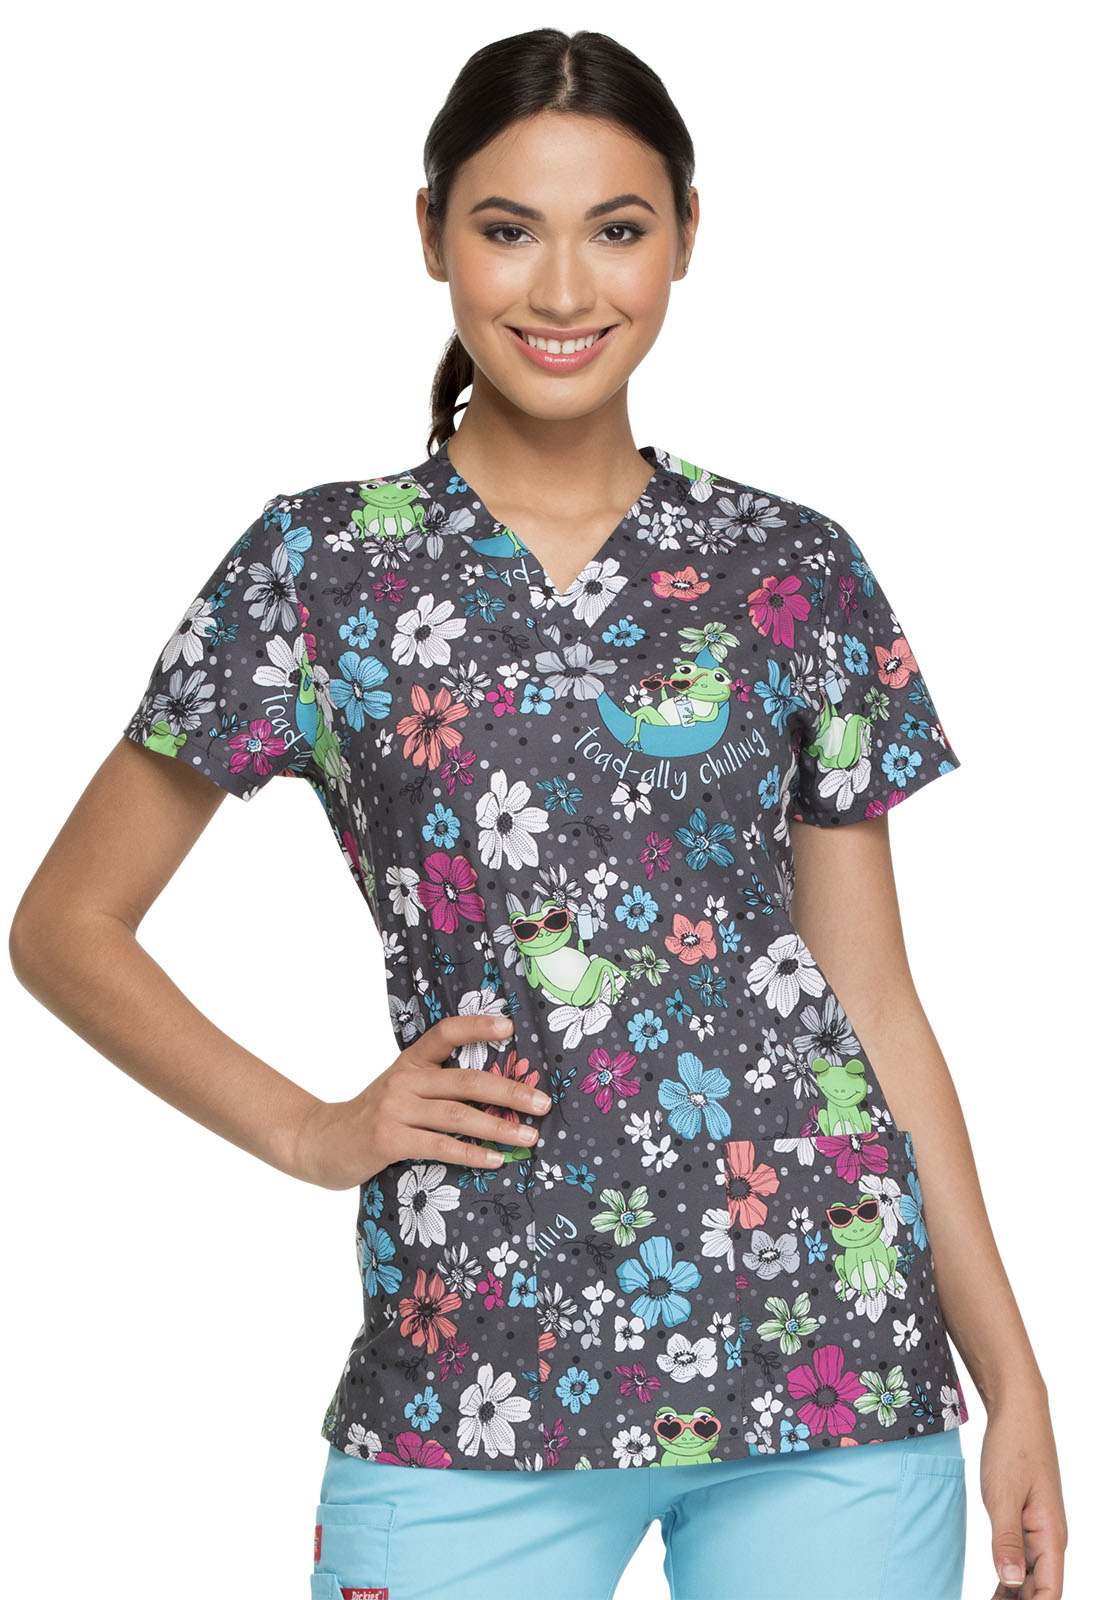 9ee5e26217e Dickies Dickies Prints V-Neck Top in Toad-ally Chilling from Dickies ...